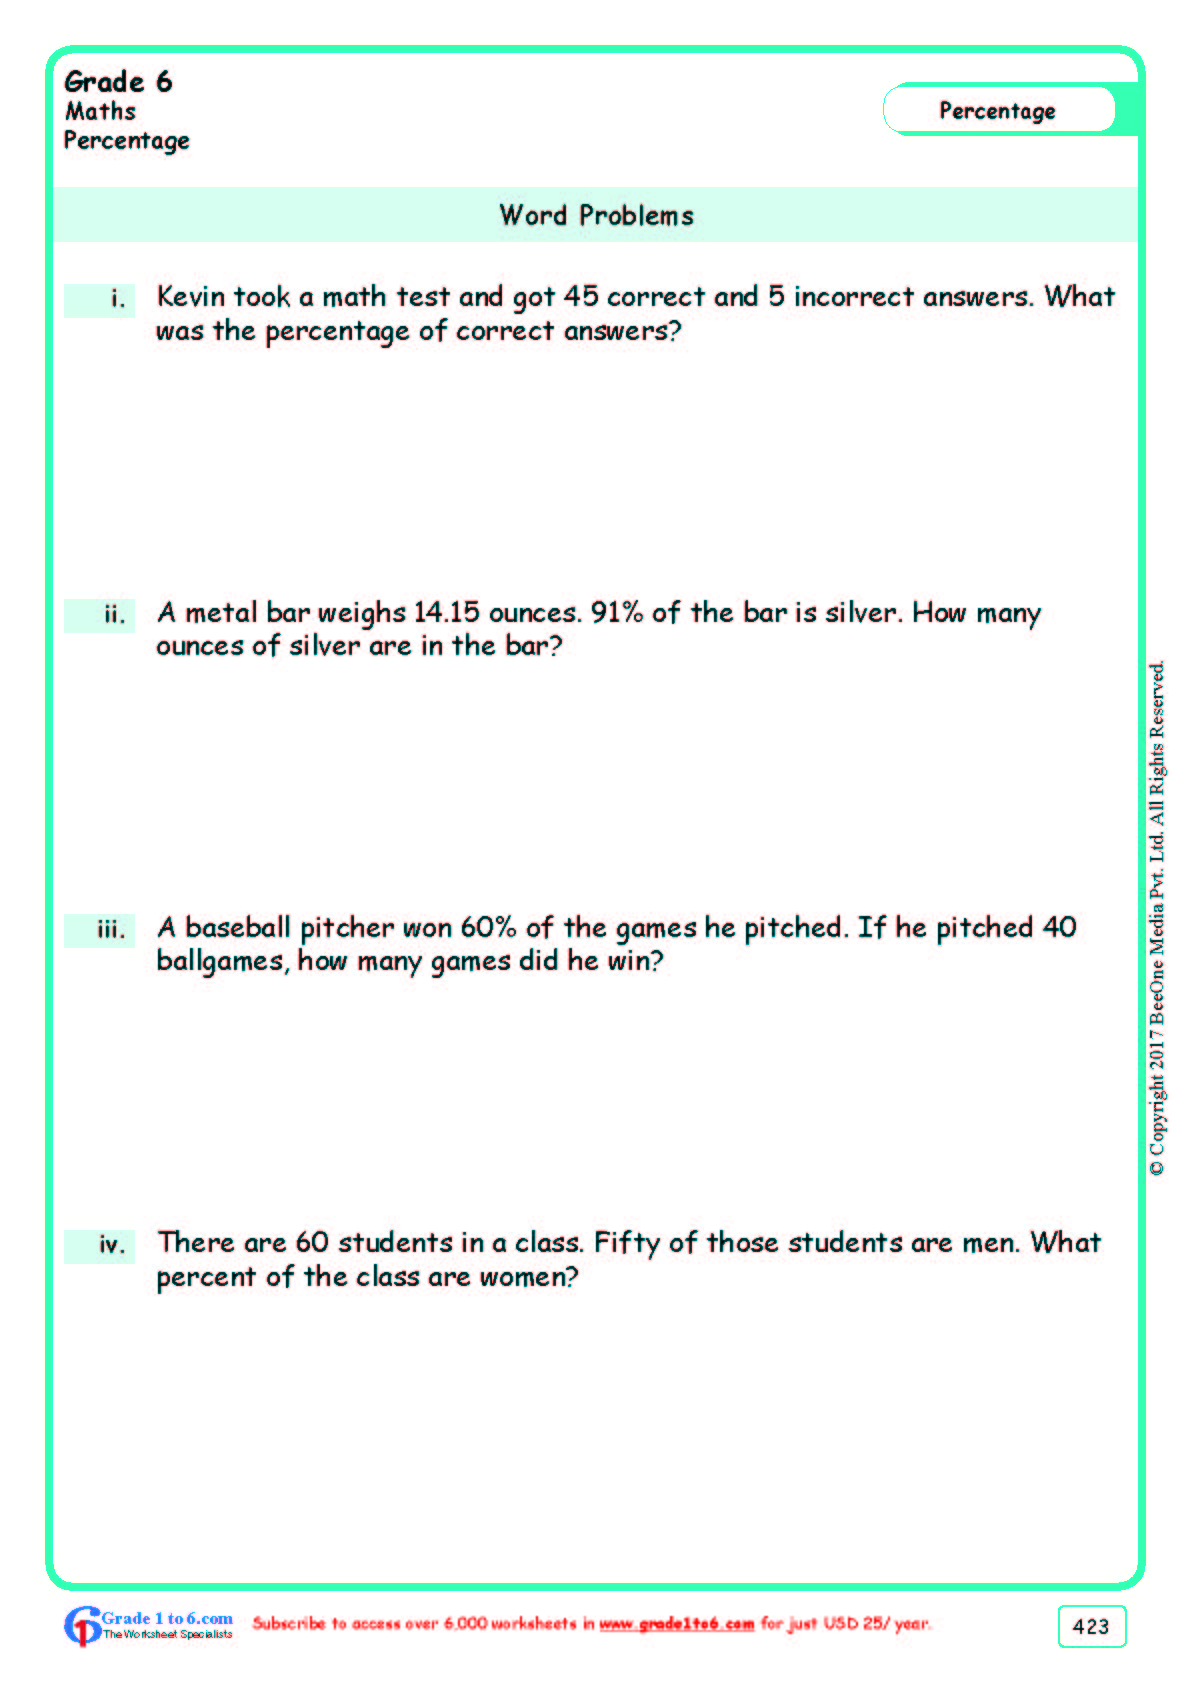 Grade 6 Class Six Word Problems Worksheets Ade1to6